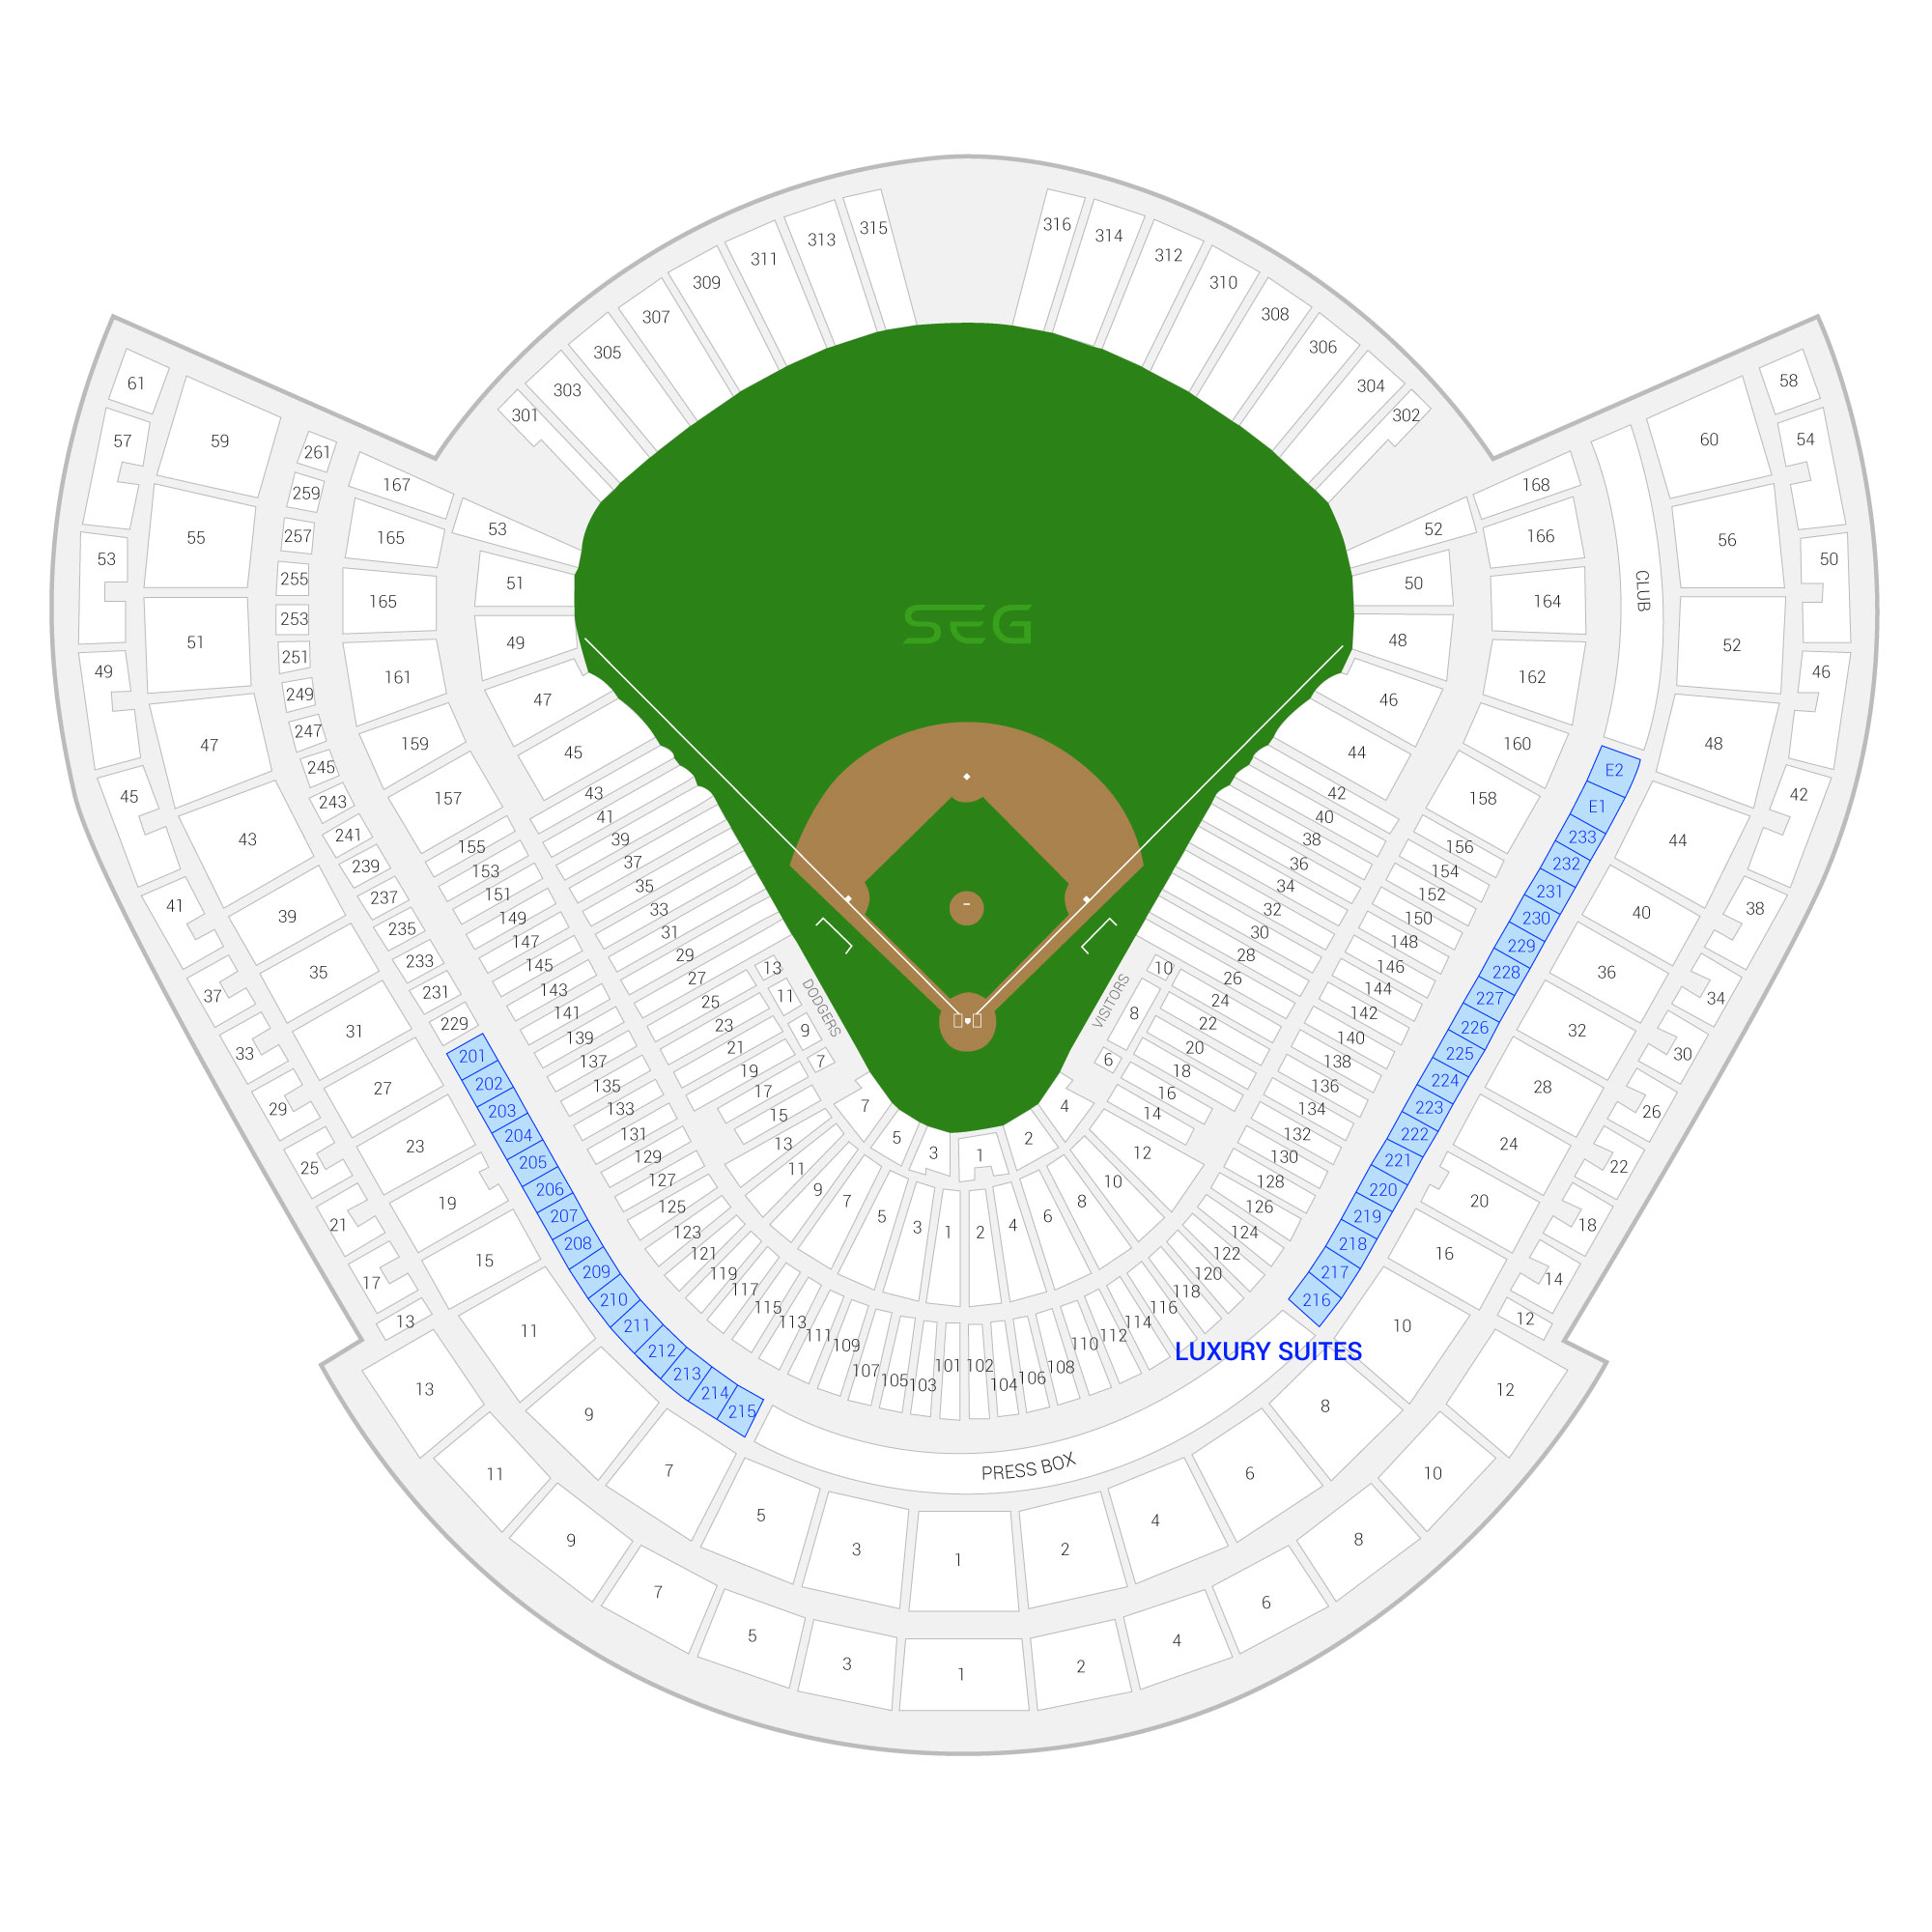 Dodger Stadium / Los Angeles Dodgers Suite Map and Seating Chart